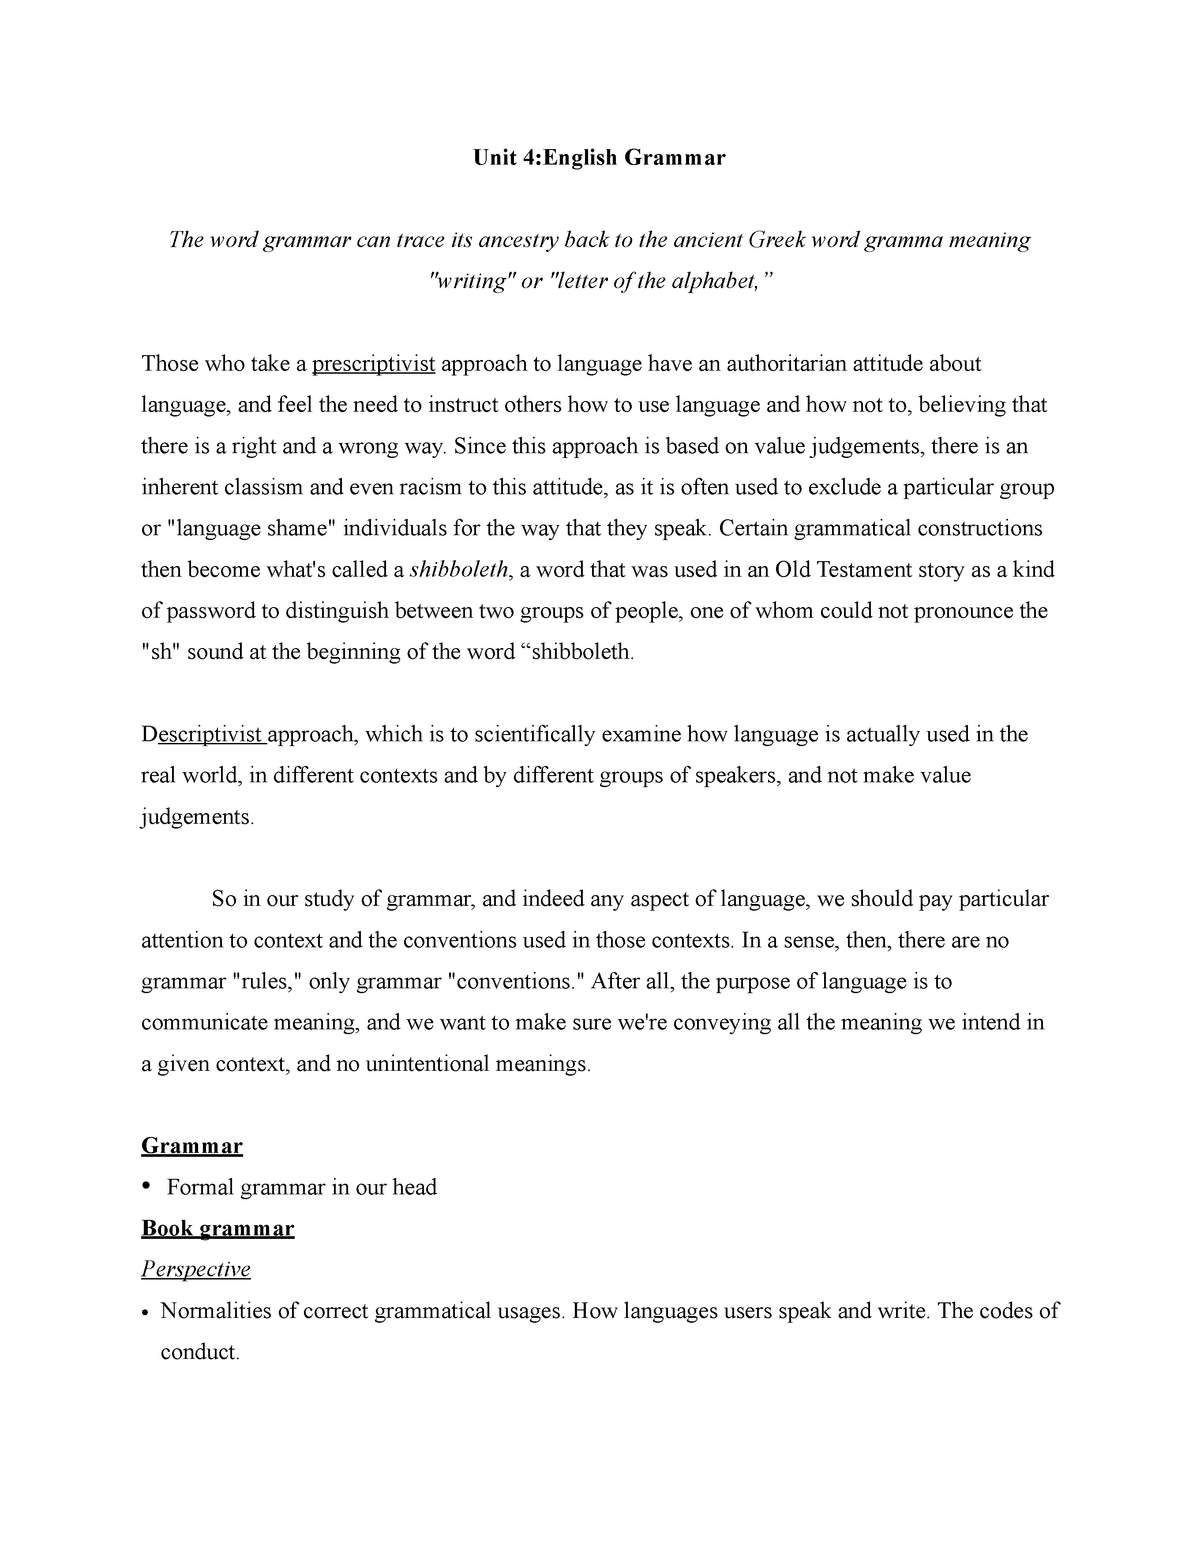 meaning of conventions in writing